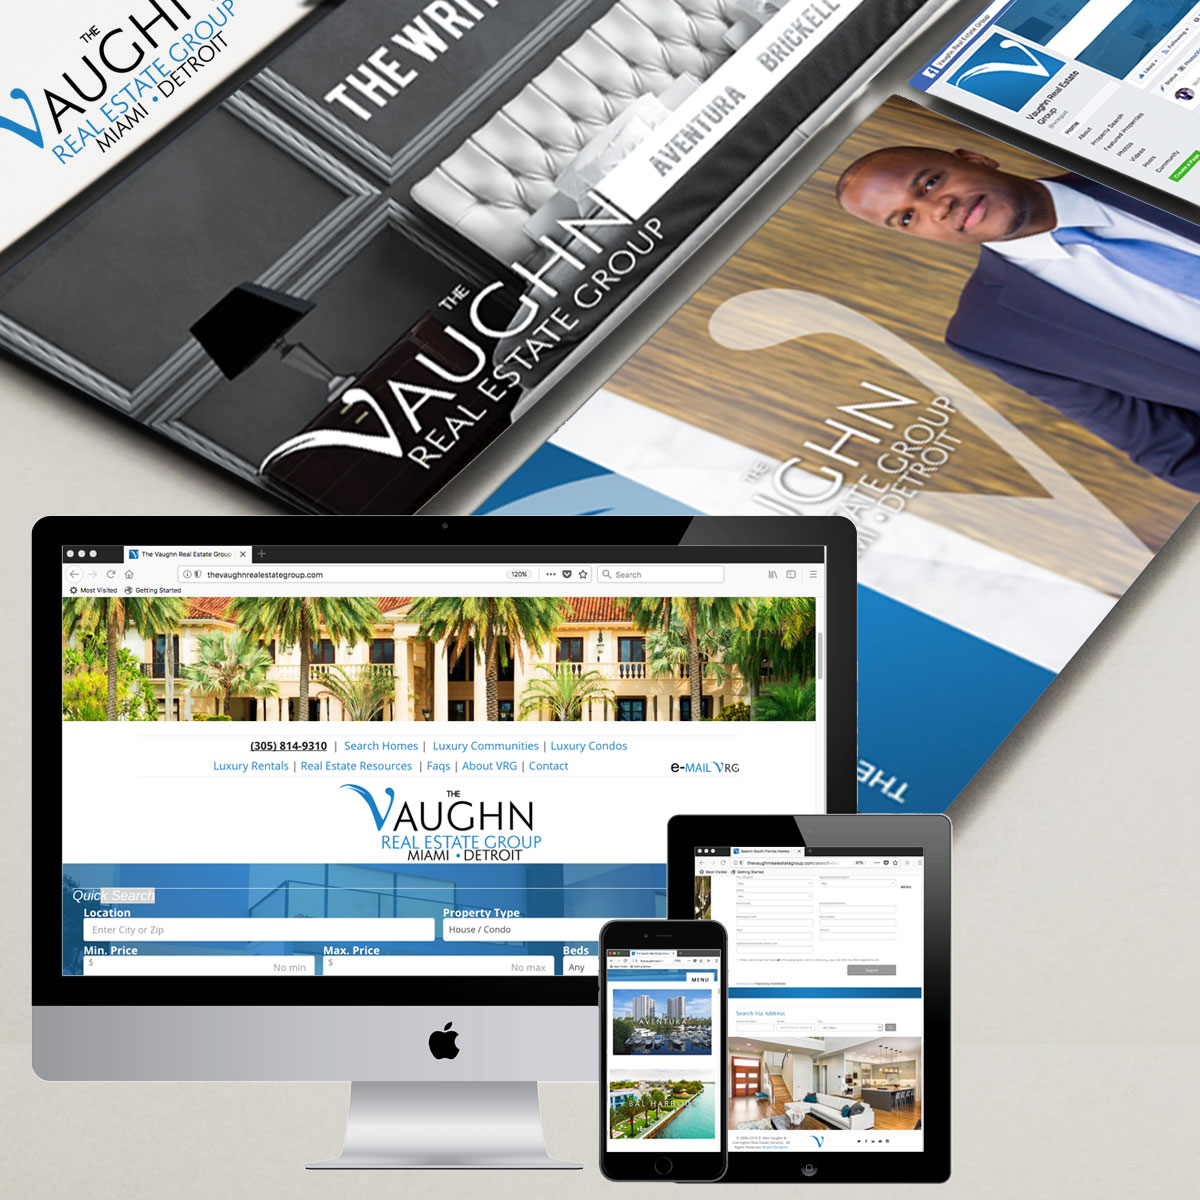 The Vaughn Real Estate Group by Cordavii Brand Consulting